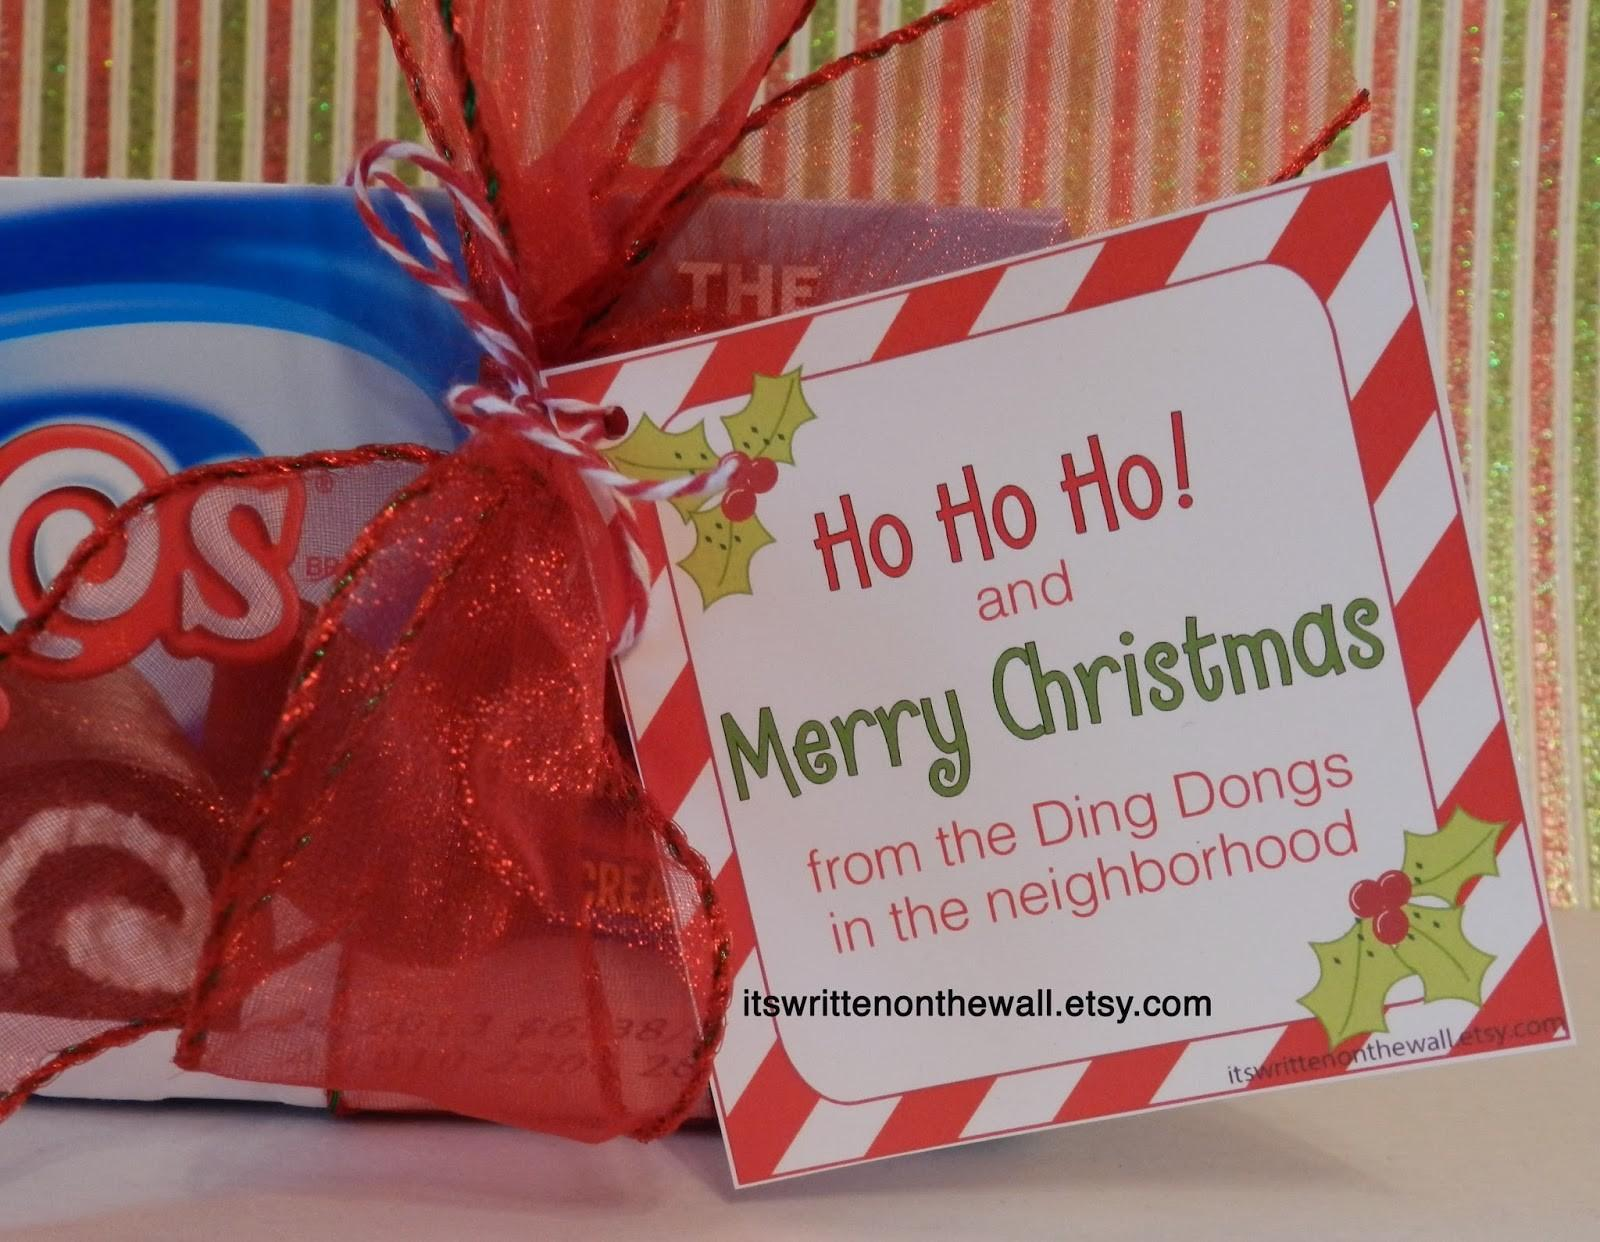 Cute Christmas Gift Friends Workers Neighbors